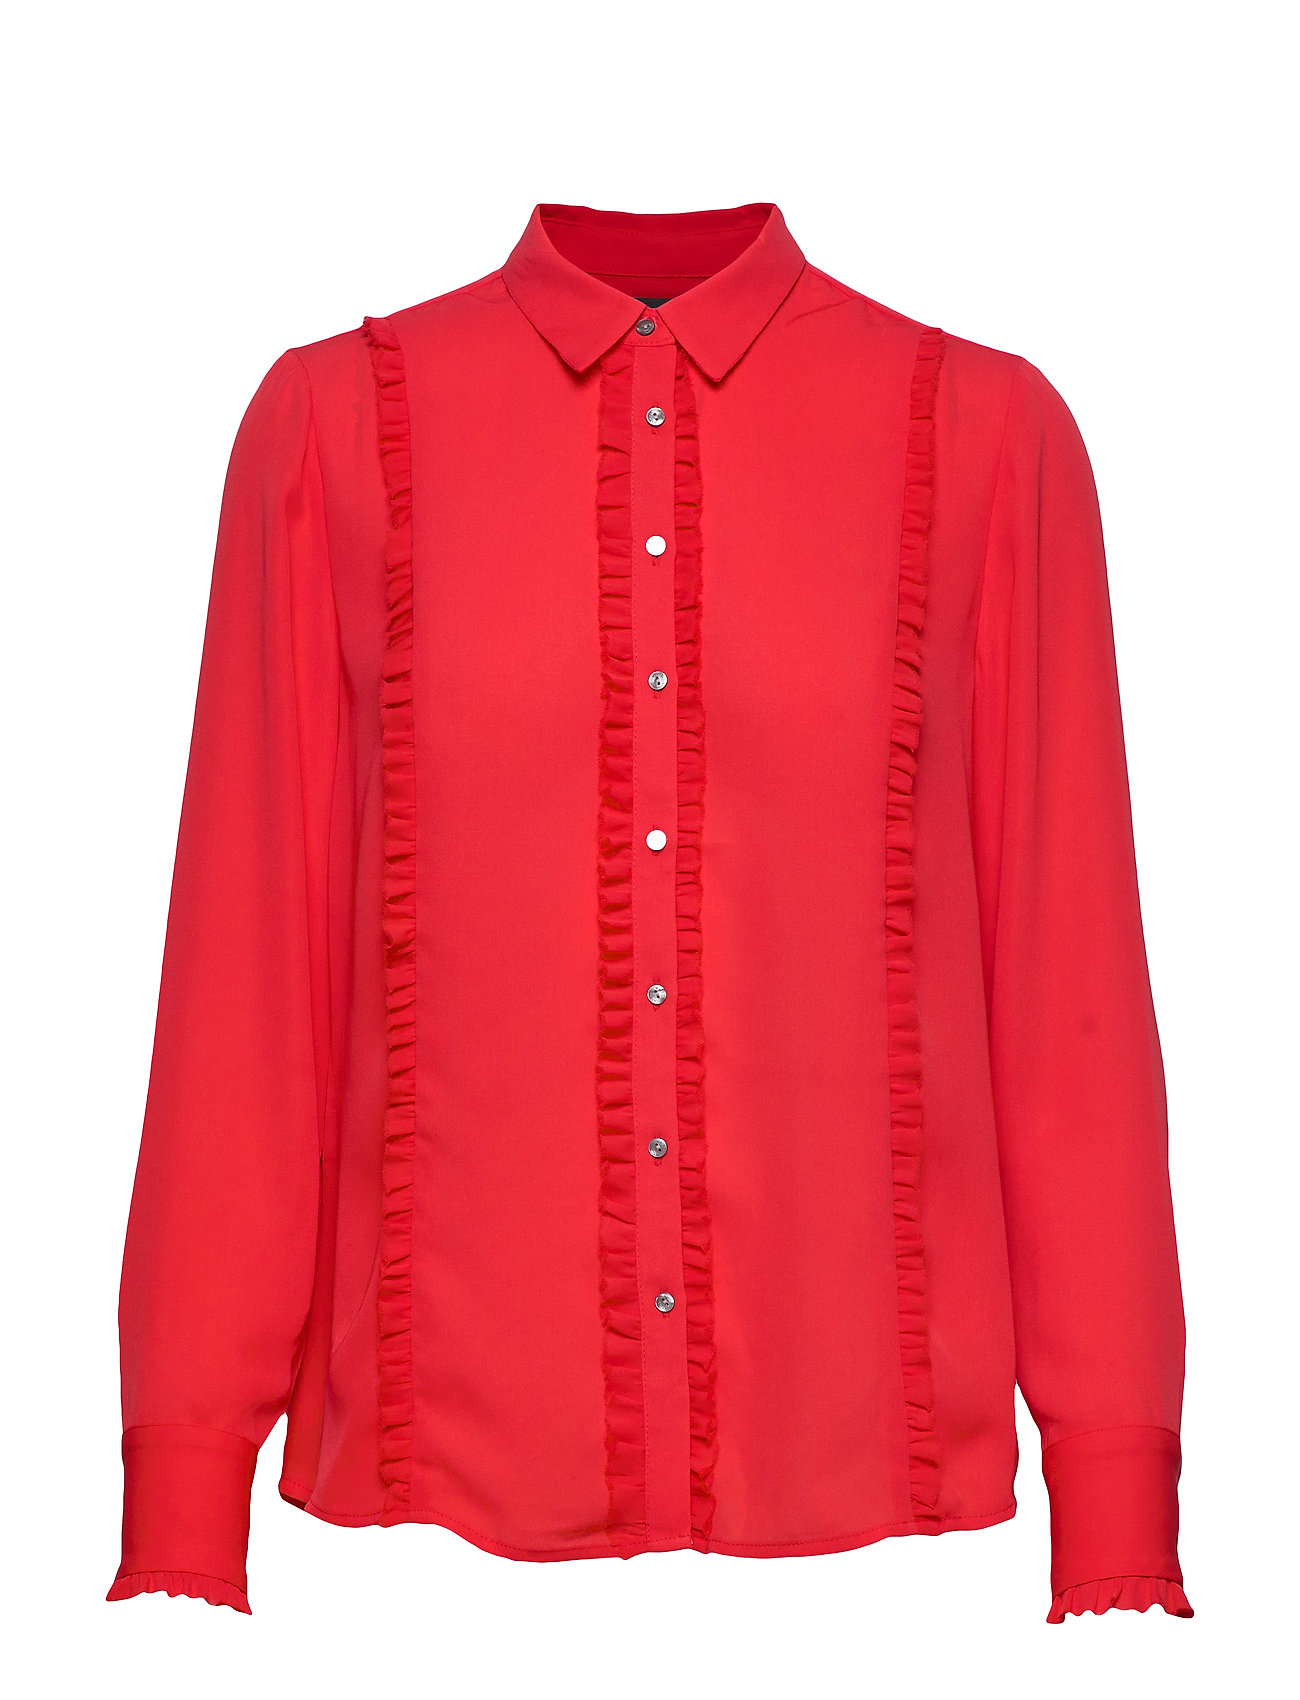 Scotch & Soda Regular fit shirt with ruffles - MARS RED